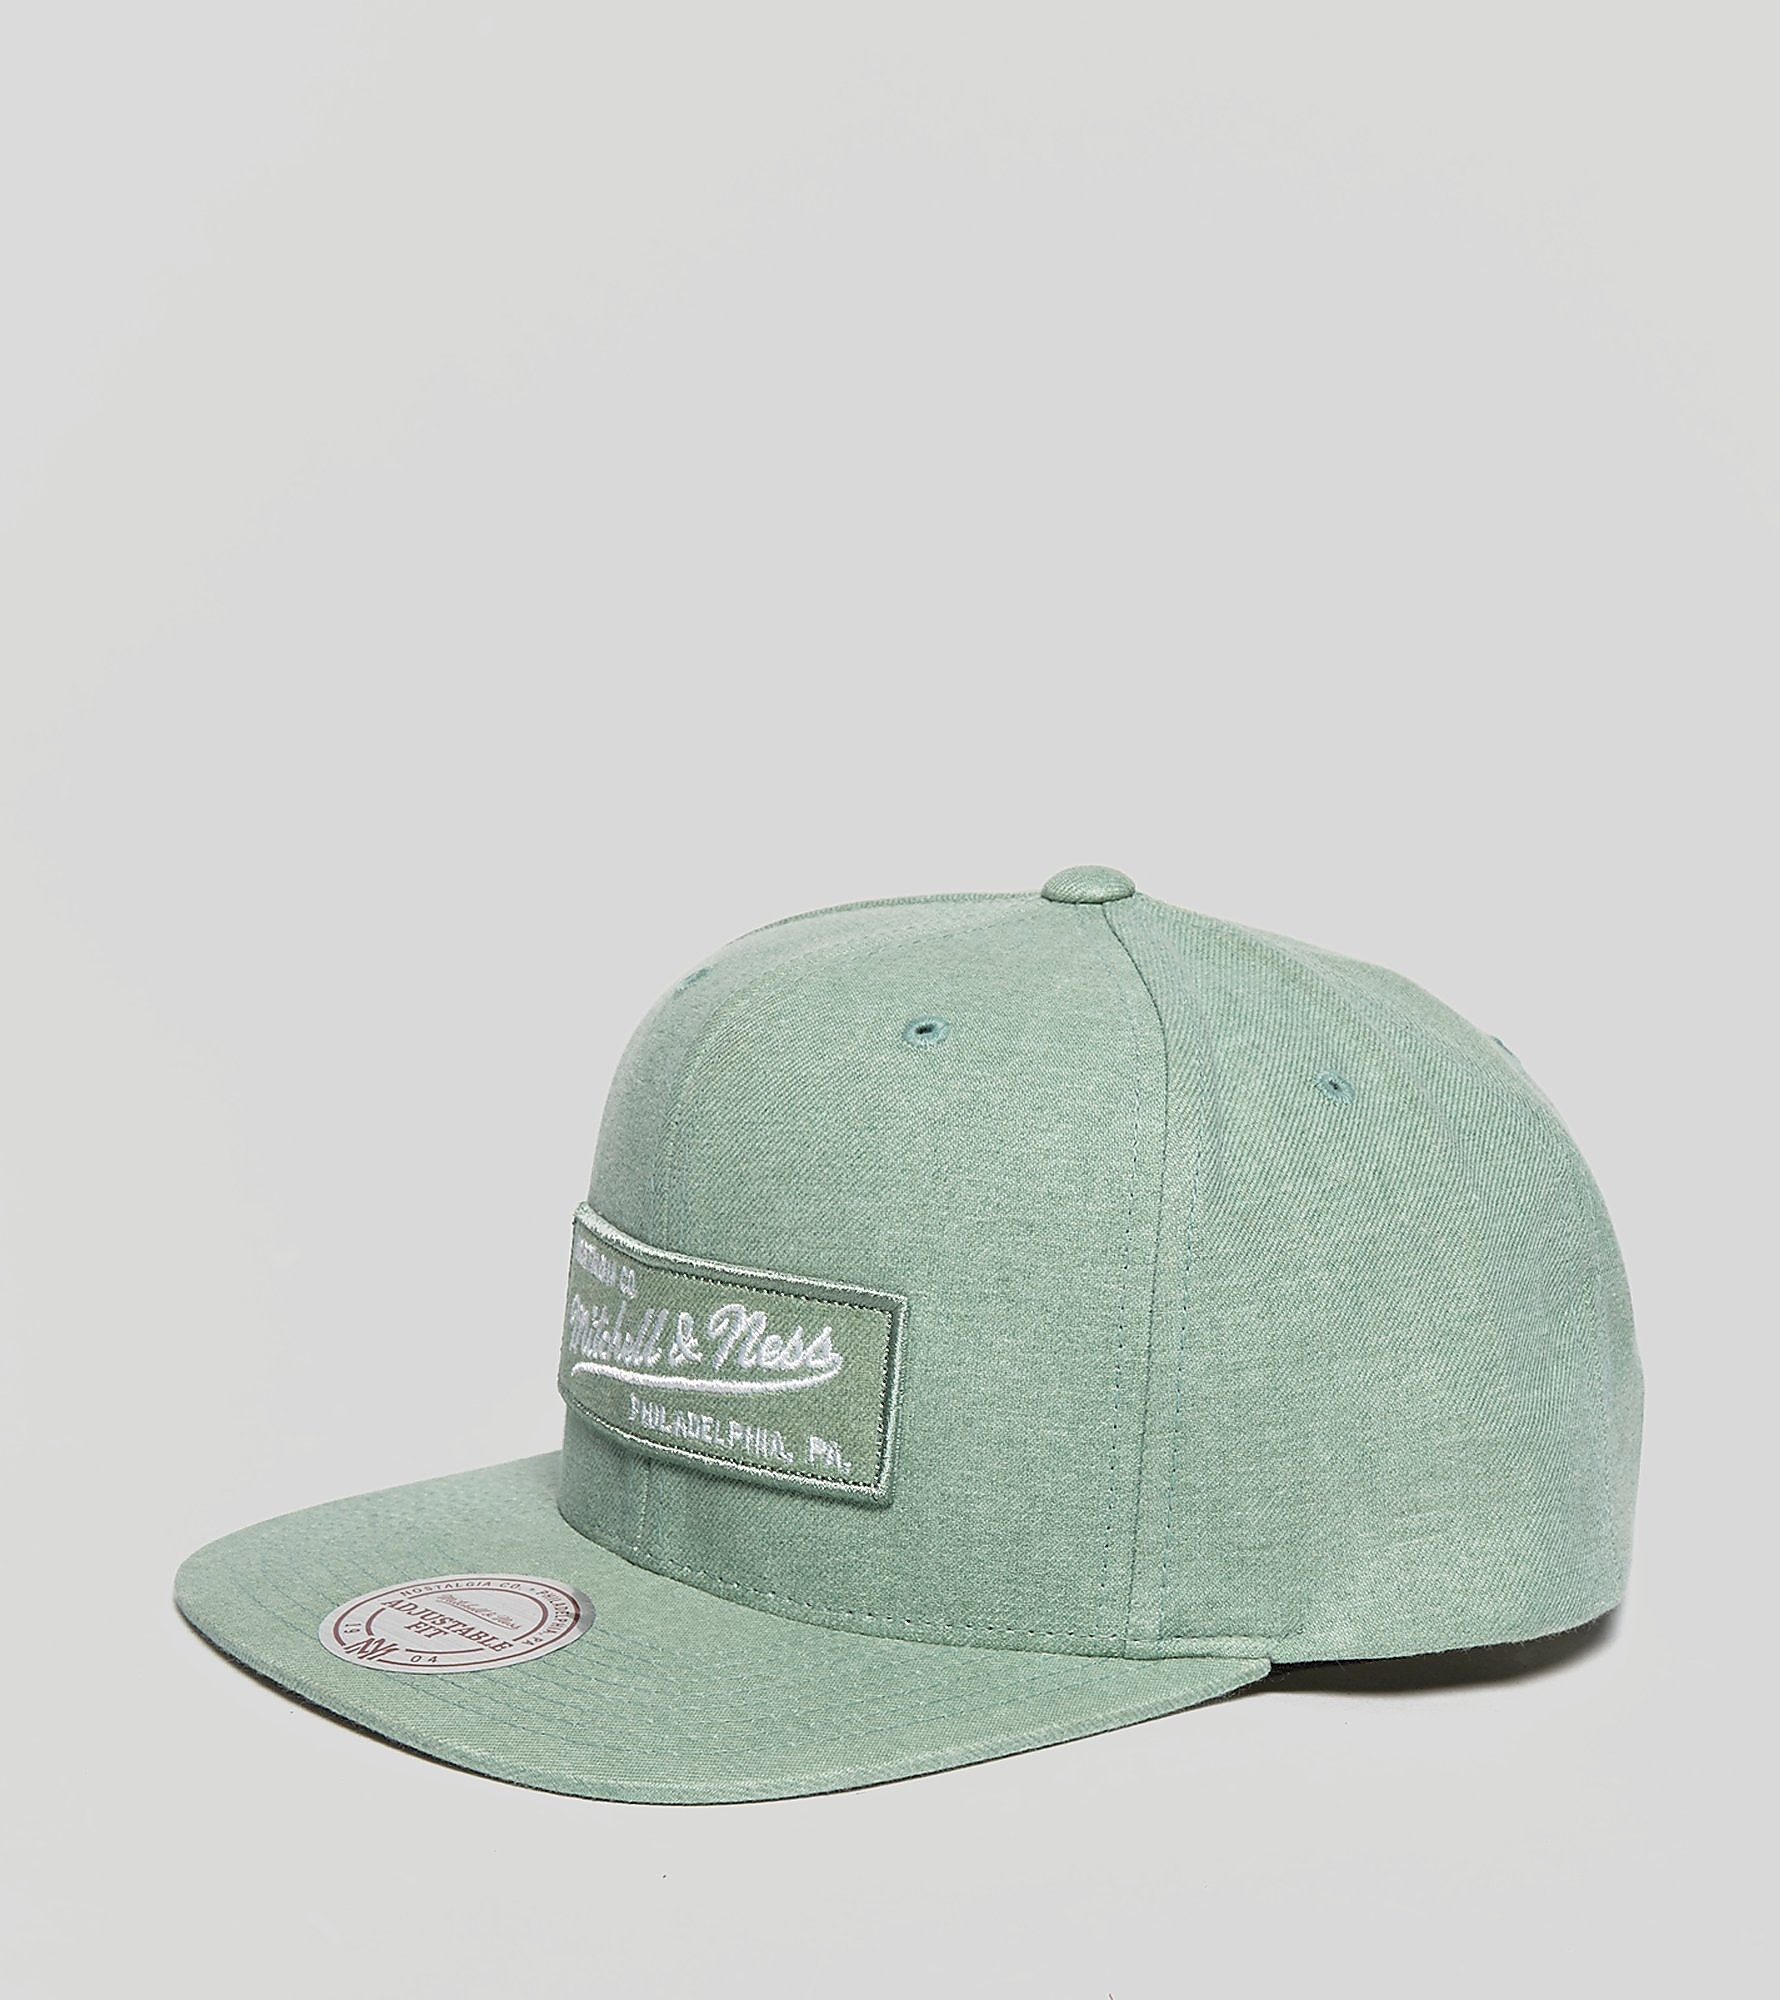 Mitchell & Ness Slub Cotton Snapback Cap